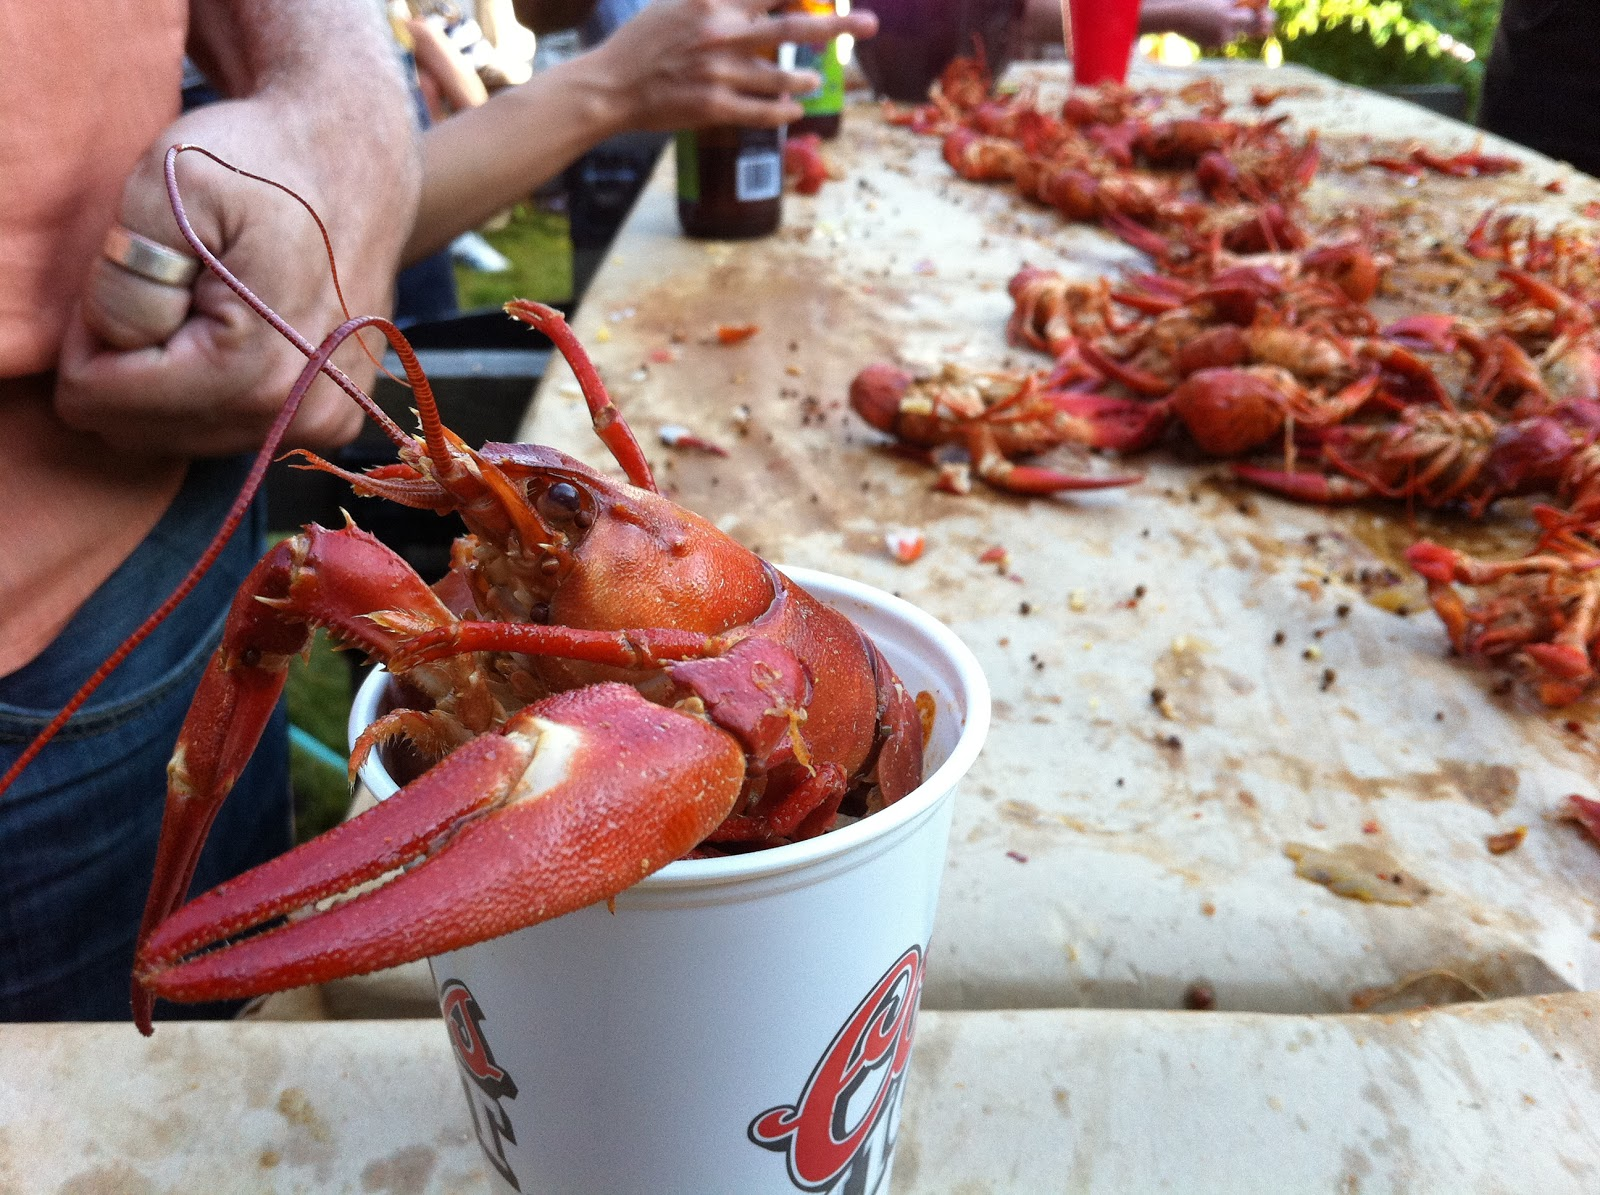 We ate crawfish and relaxed in